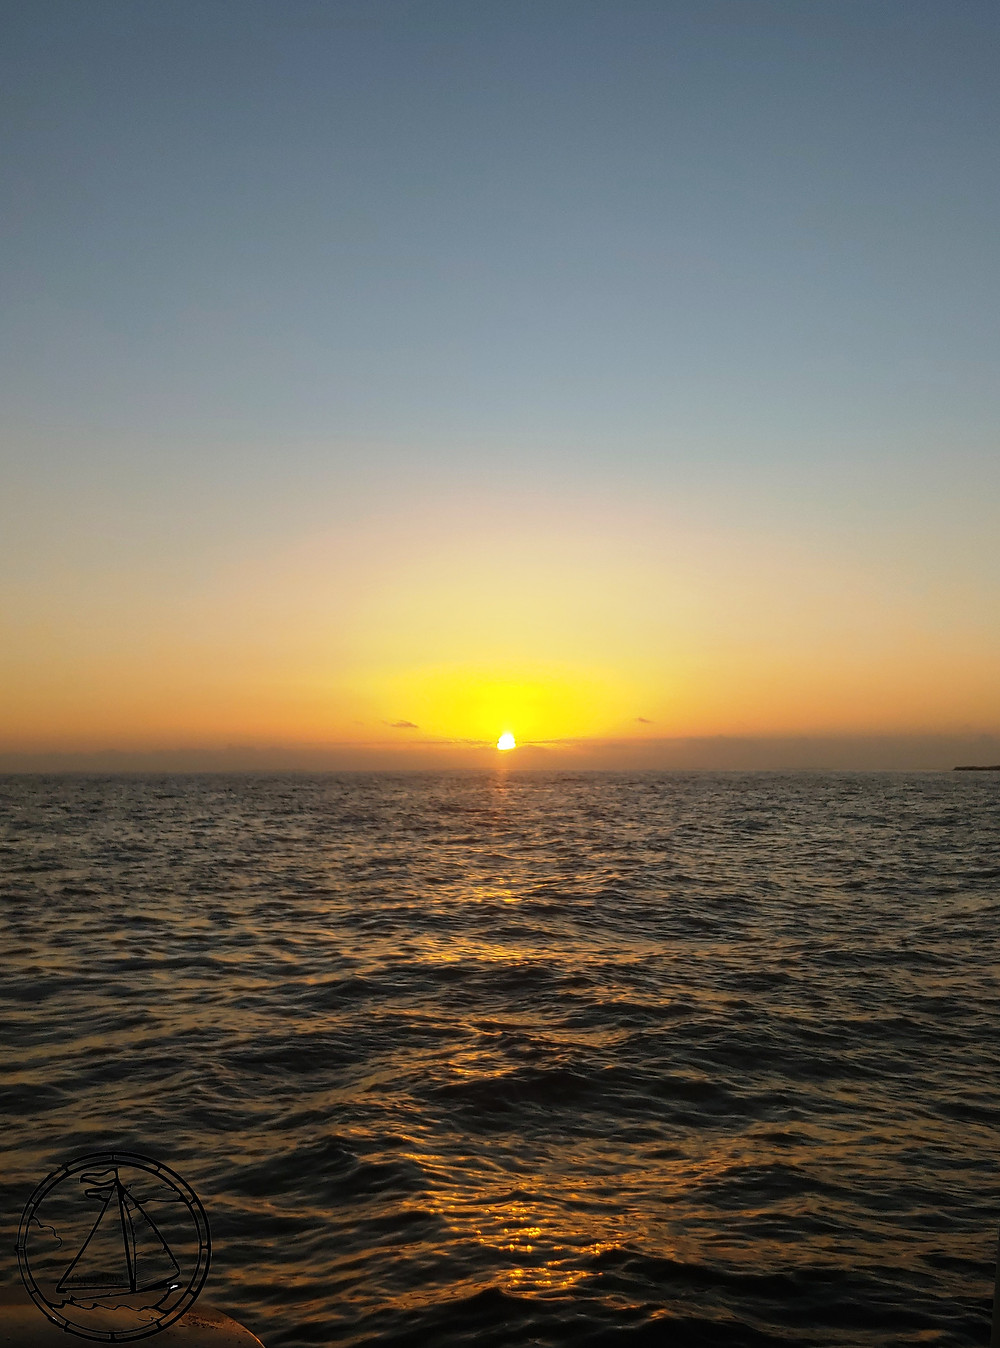 sunrise, morning, passage, underway, exuma sound